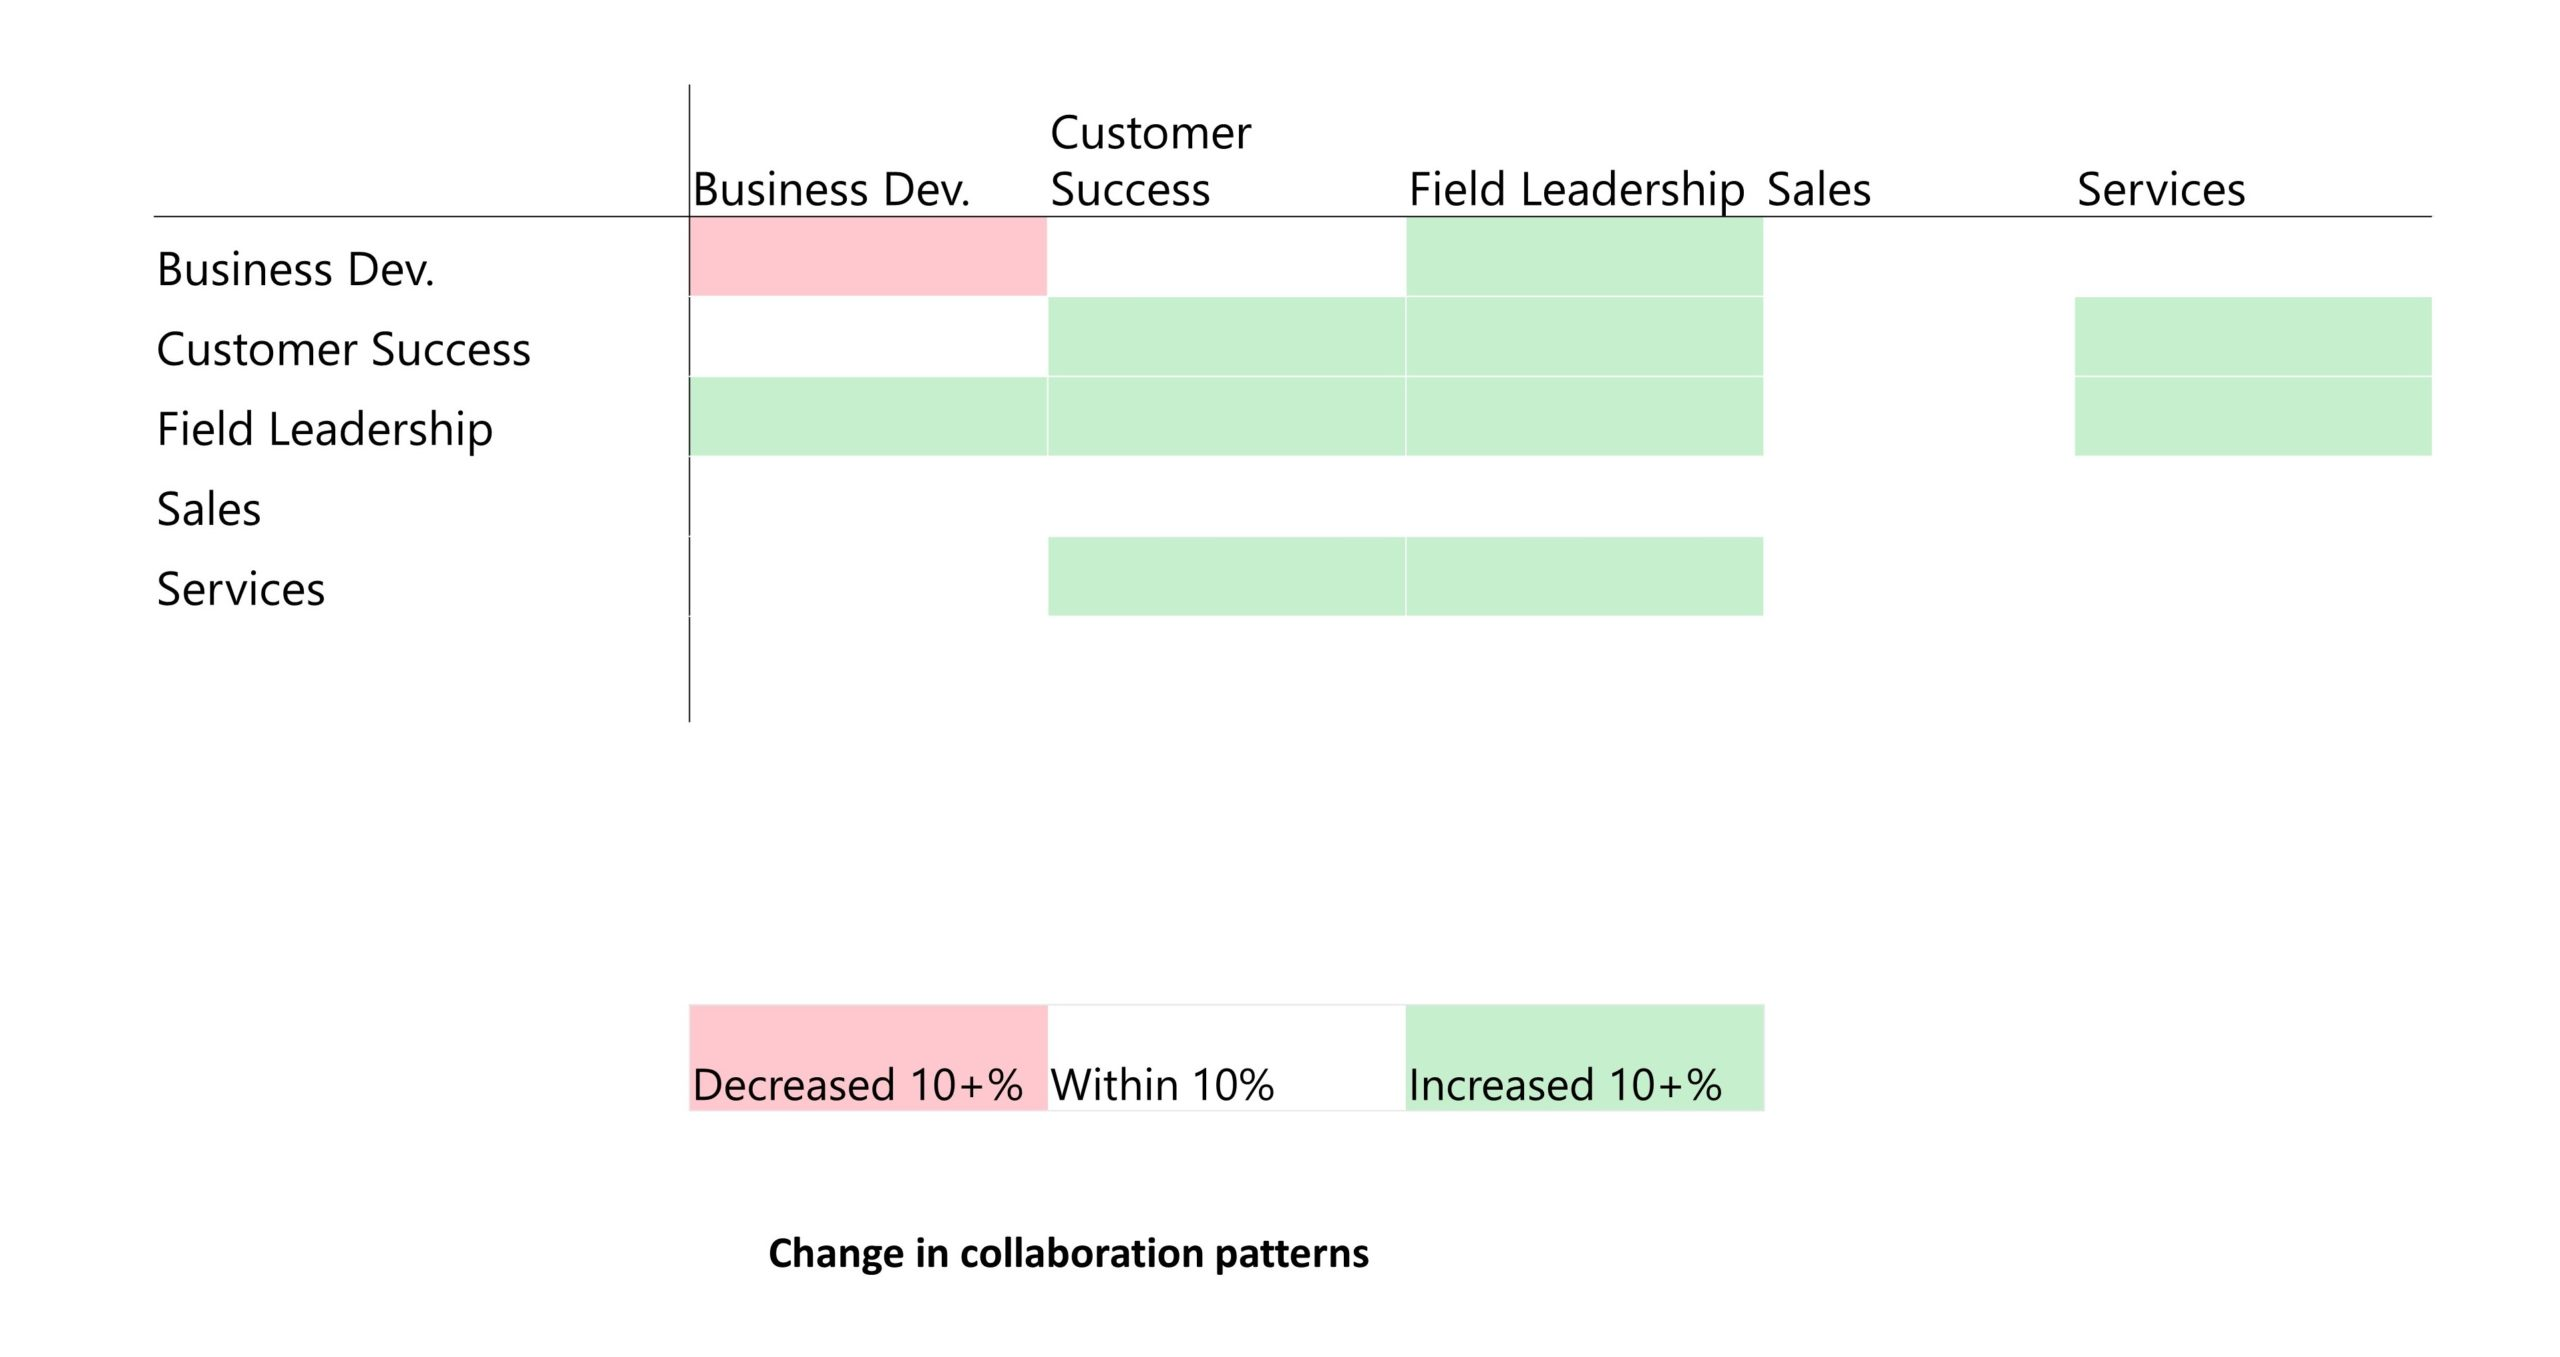 Graphic showing change in collaboration patterns among sales and services groups